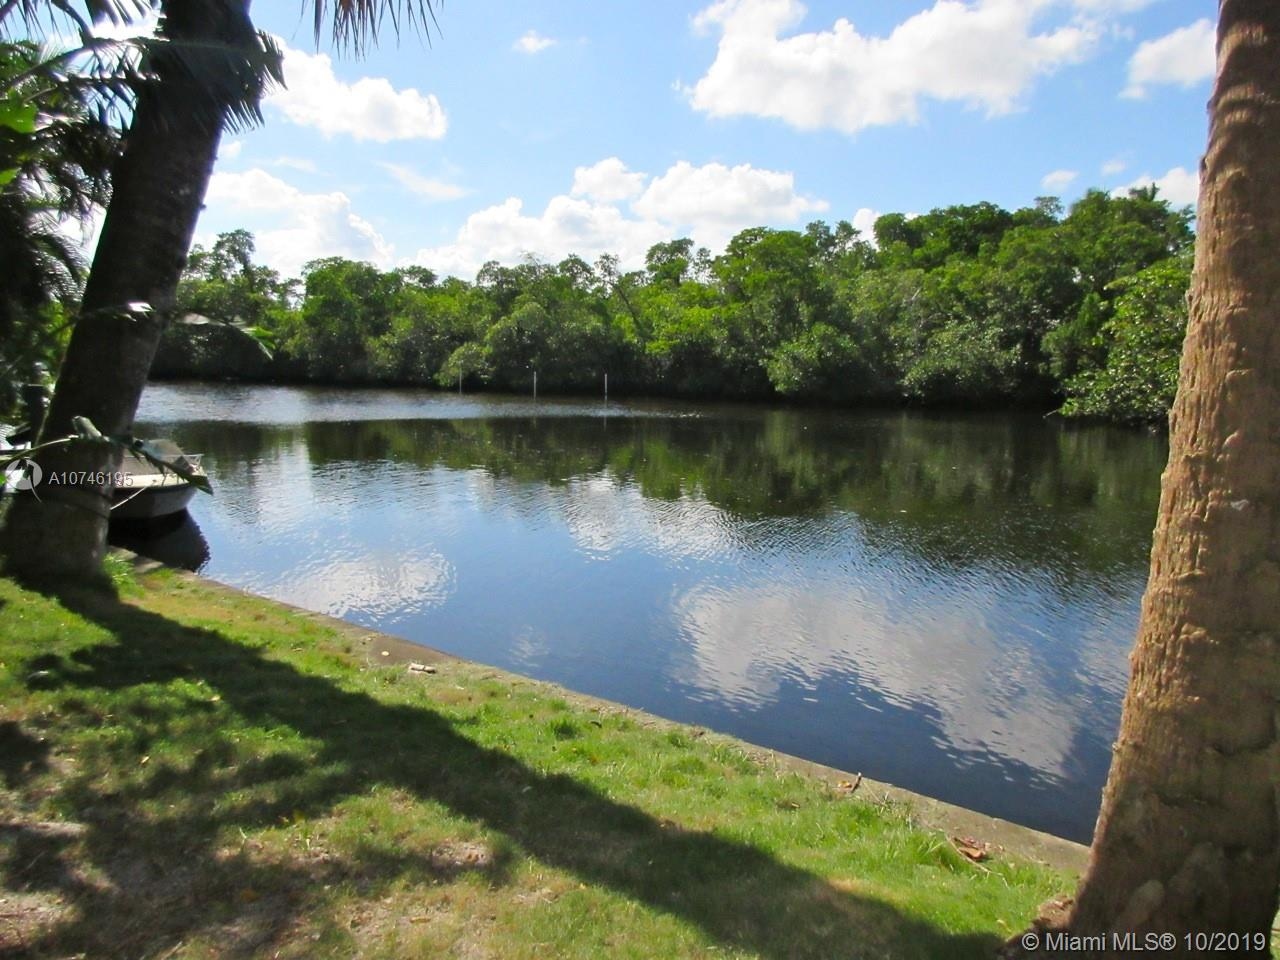 Spectacular Waterfront Location! Endless Possibilities! This South Fork of the Middle River property sports a huge lot! 12,014 sqft! Just over a quarter acre, with over 105 feet of water frontage. Zoned RML-25, one could build a multi-unit, luxury property for sales or rentals. A 200 foot height restriction, means a townhouse, or higher, is in order. Bordering Wilton Manors & Ft. Lauderdale, this location puts you in the sweet spot, as it is close to absolutely everything! The existing 3/2 single family home, is showing its age. It needs a new roof, attention to its plumbing, & a complete renovation. The wood deck needs replacement & the seawall needs some care. INVESTOR/DEVELOPER: Build a high profit waterfront dream! PRIMARY: Renovate into a high value waterfront dream!HURRY!